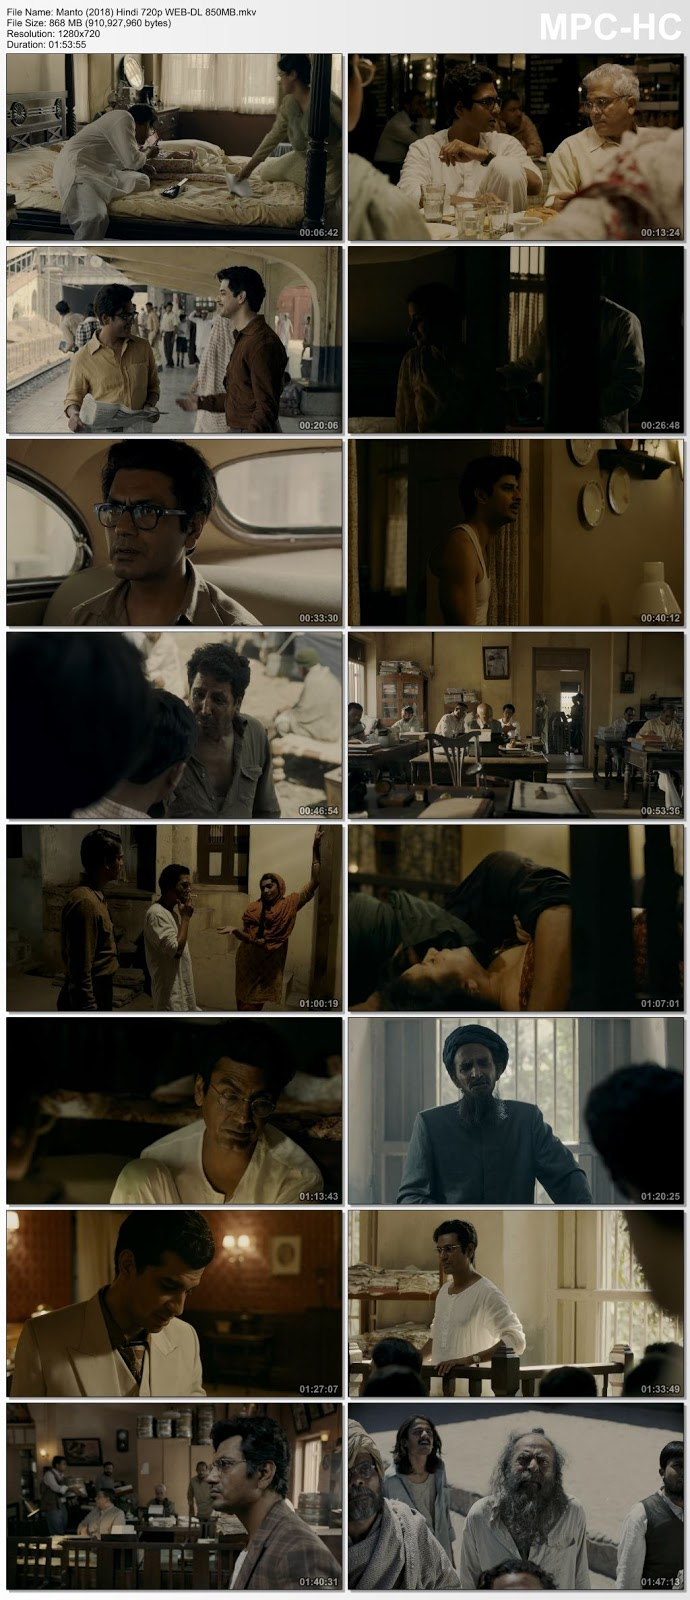 Manto (2018) Hindi 720p WEB-DL 850MB Desirehub